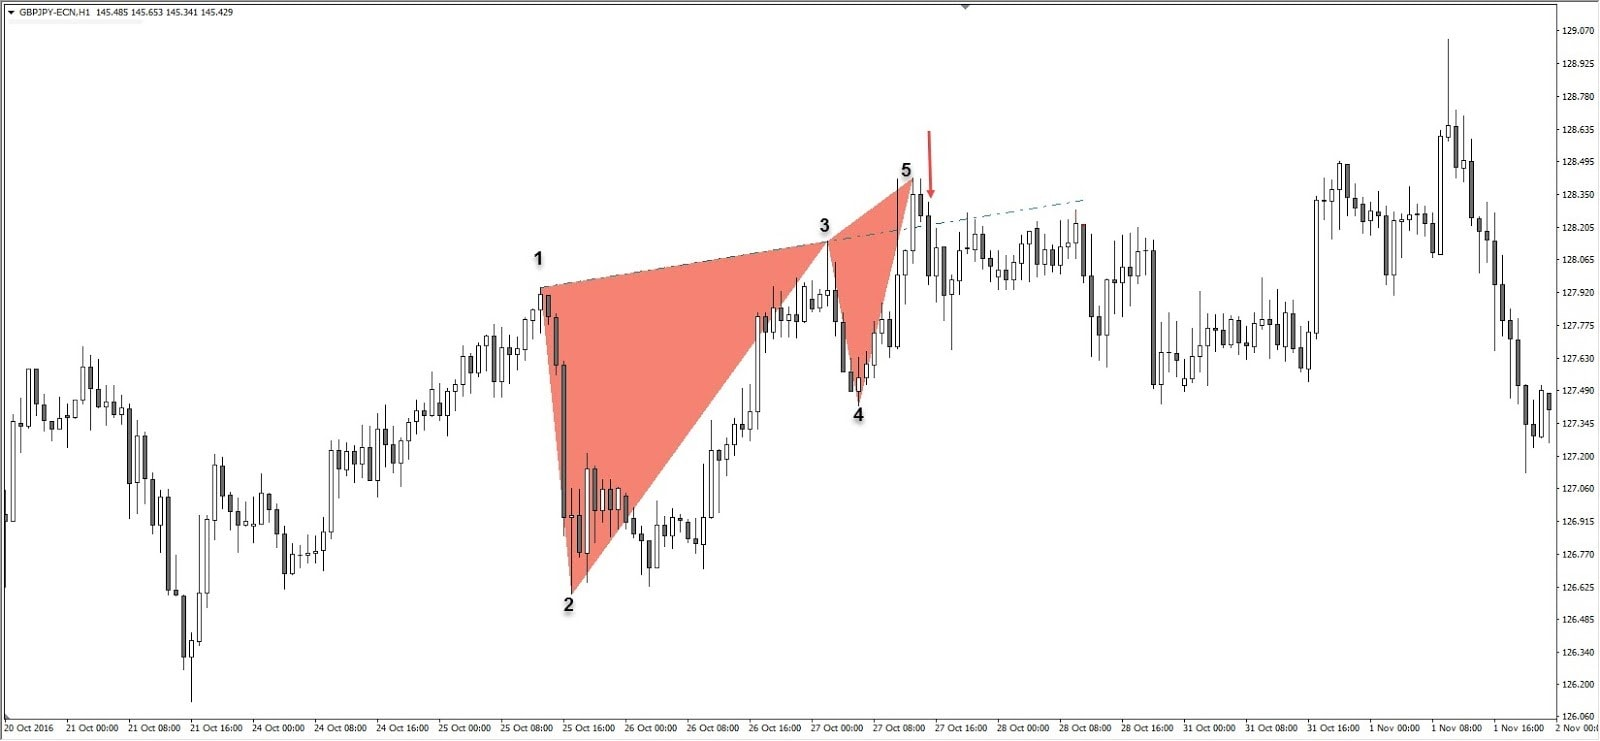 GBPJPY H1 chart